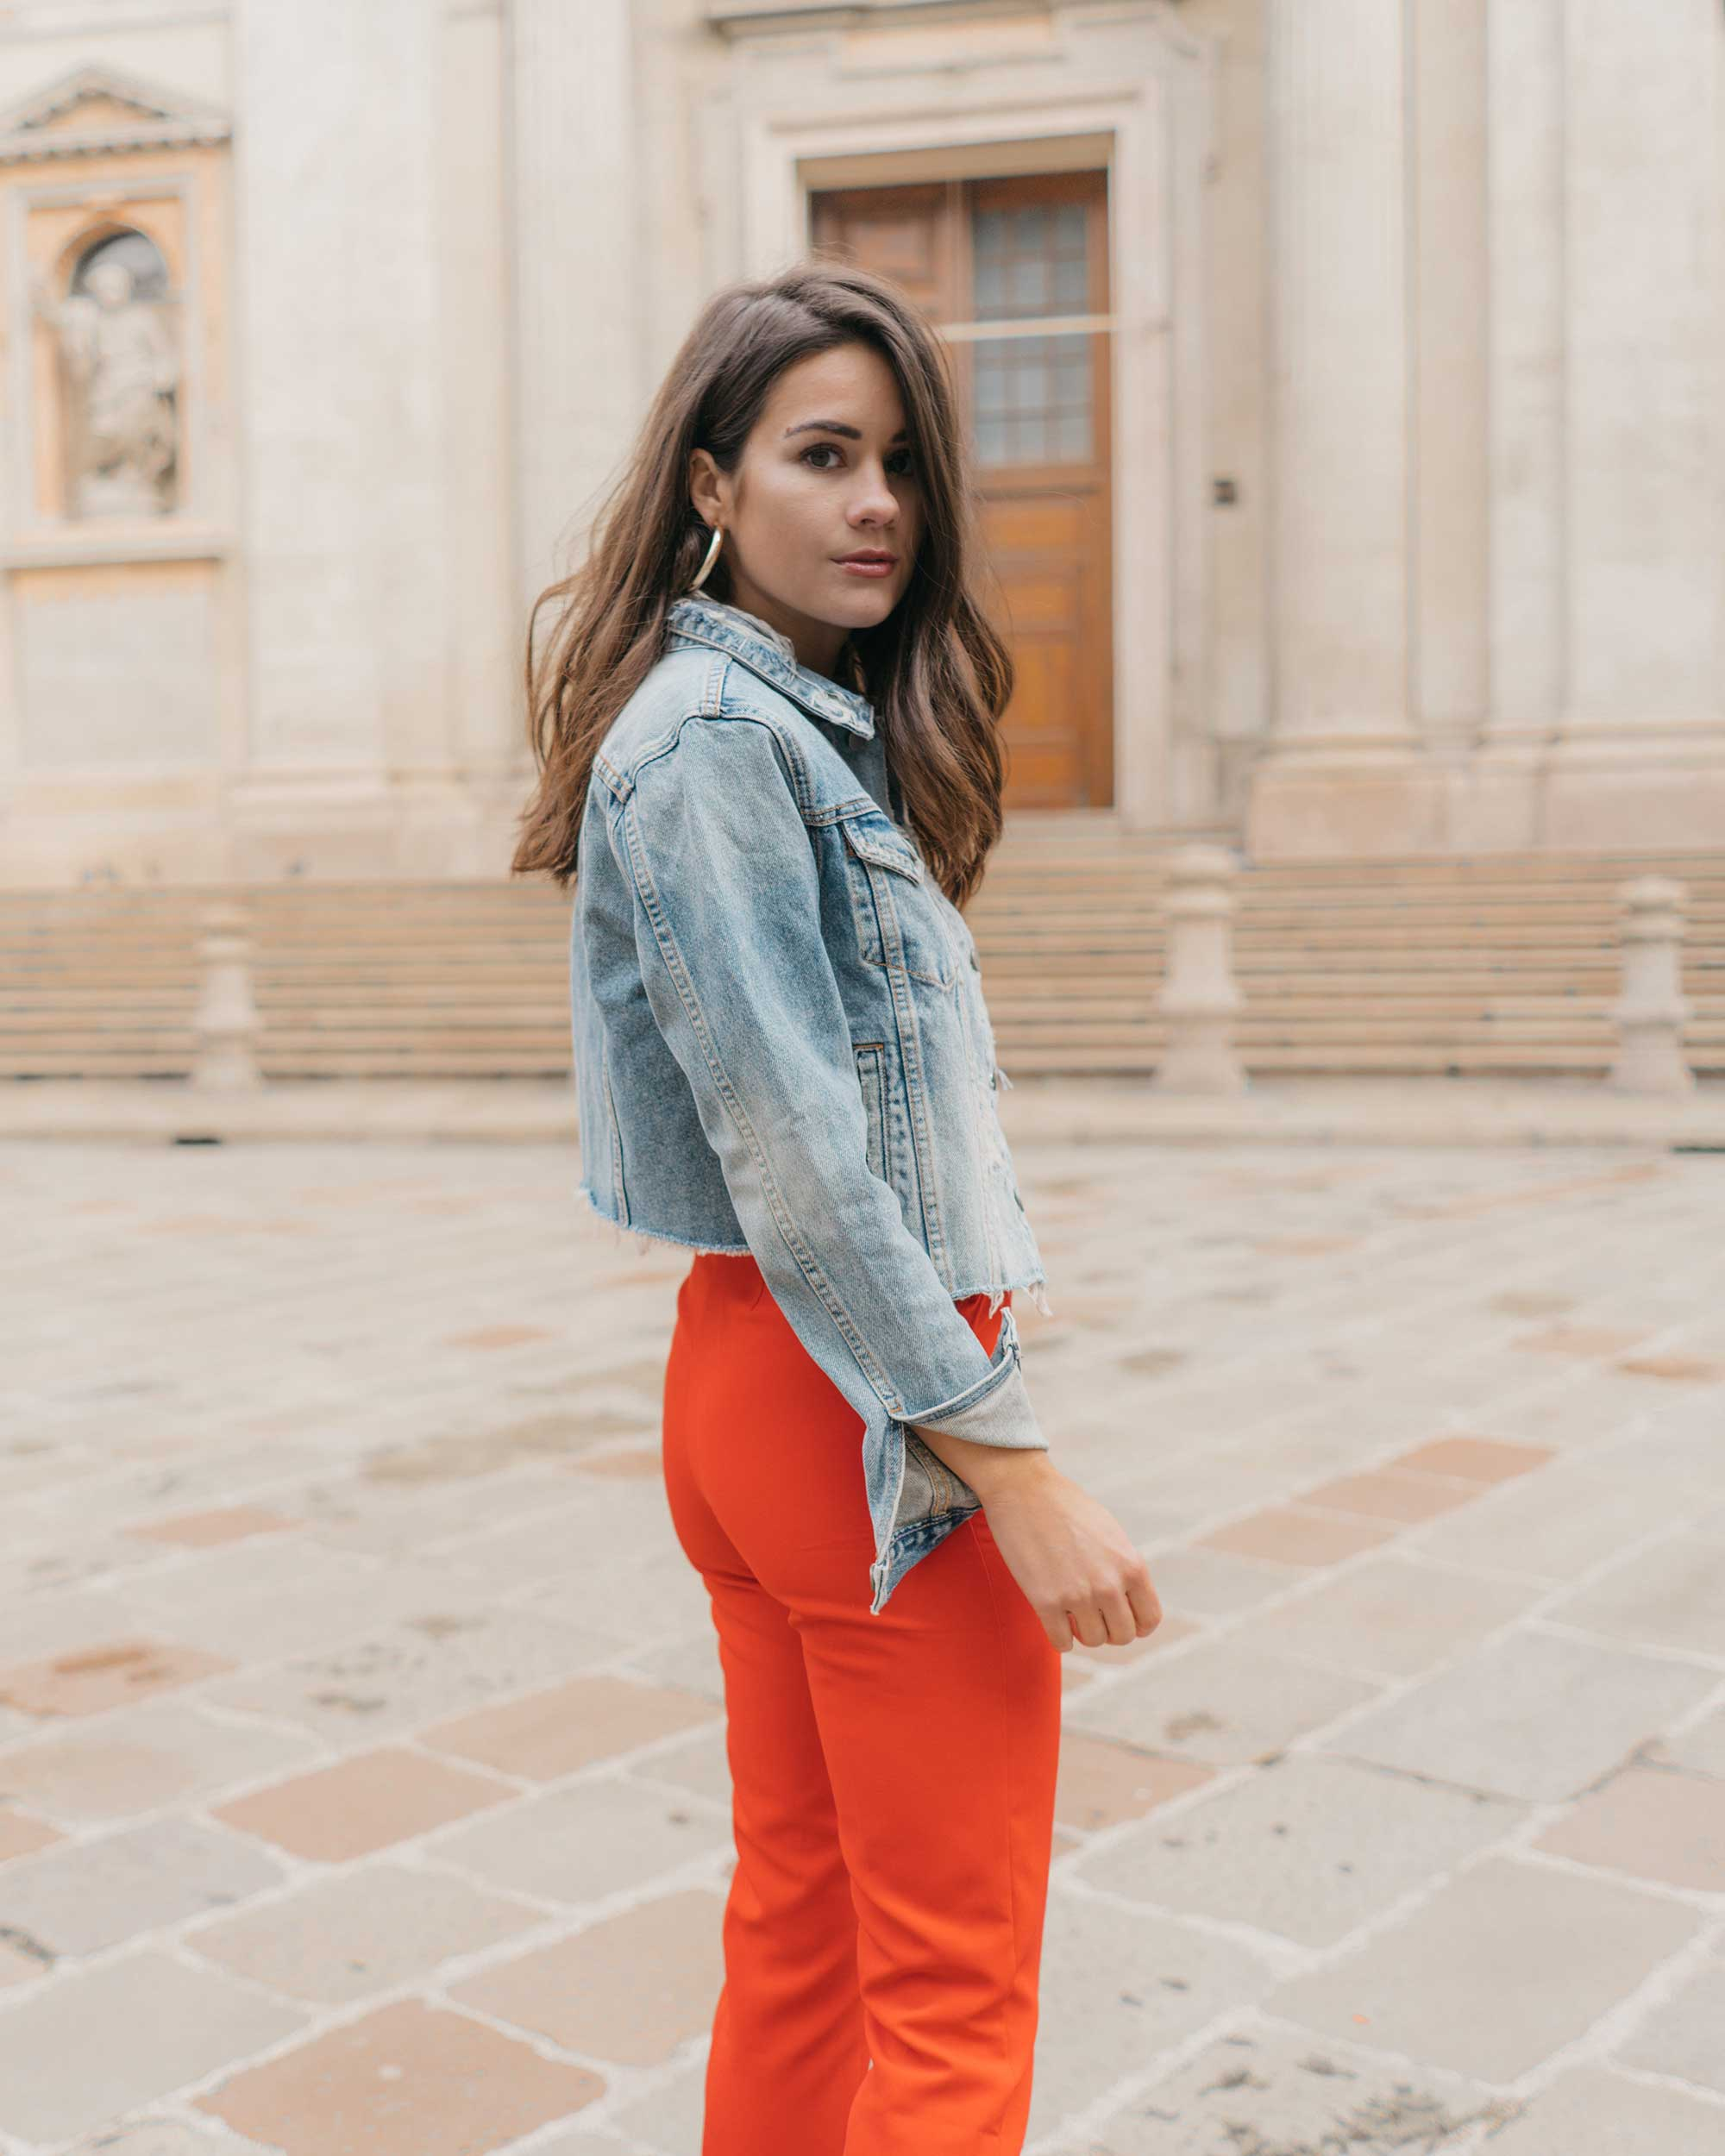 Red-Skinny-Pants,-All-You-Need-Is-Love'-Slogan-T-Shirt,-Cara-Cropped-Denim-Jacket,-Milan-Spring-Outfit6.jpg